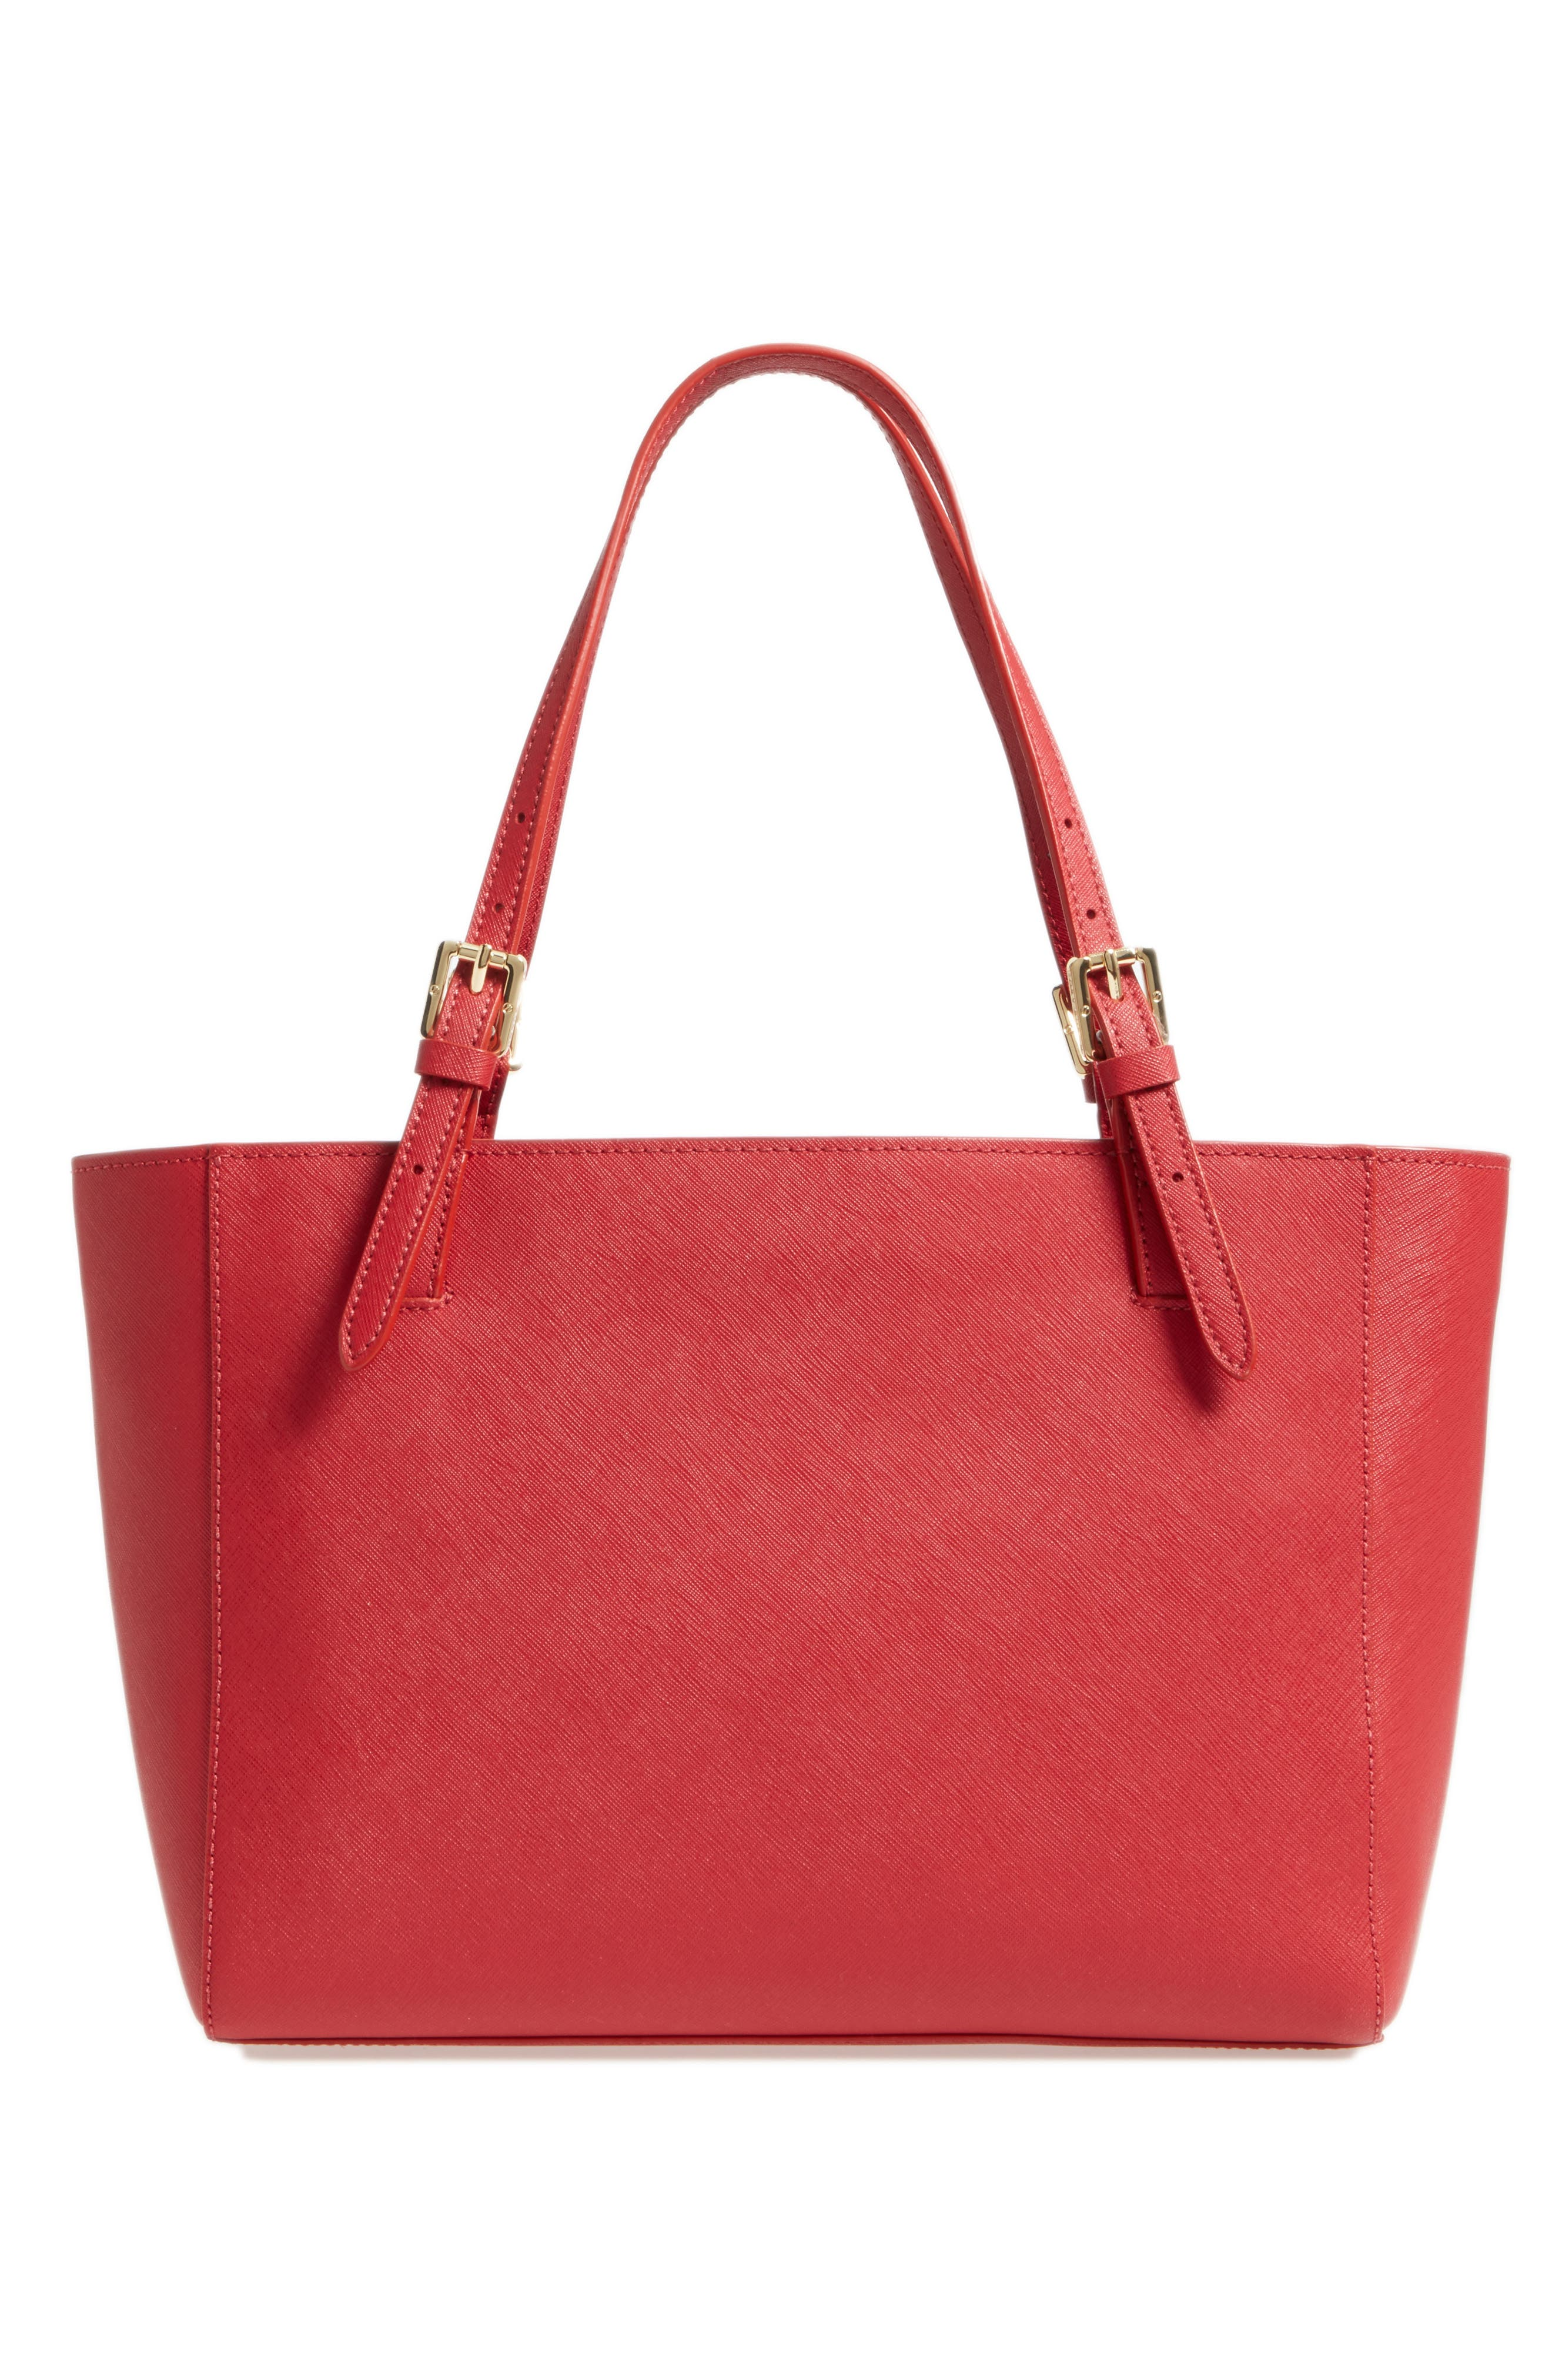 'Small York' Saffiano Leather Buckle Tote,                             Alternate thumbnail 41, color,